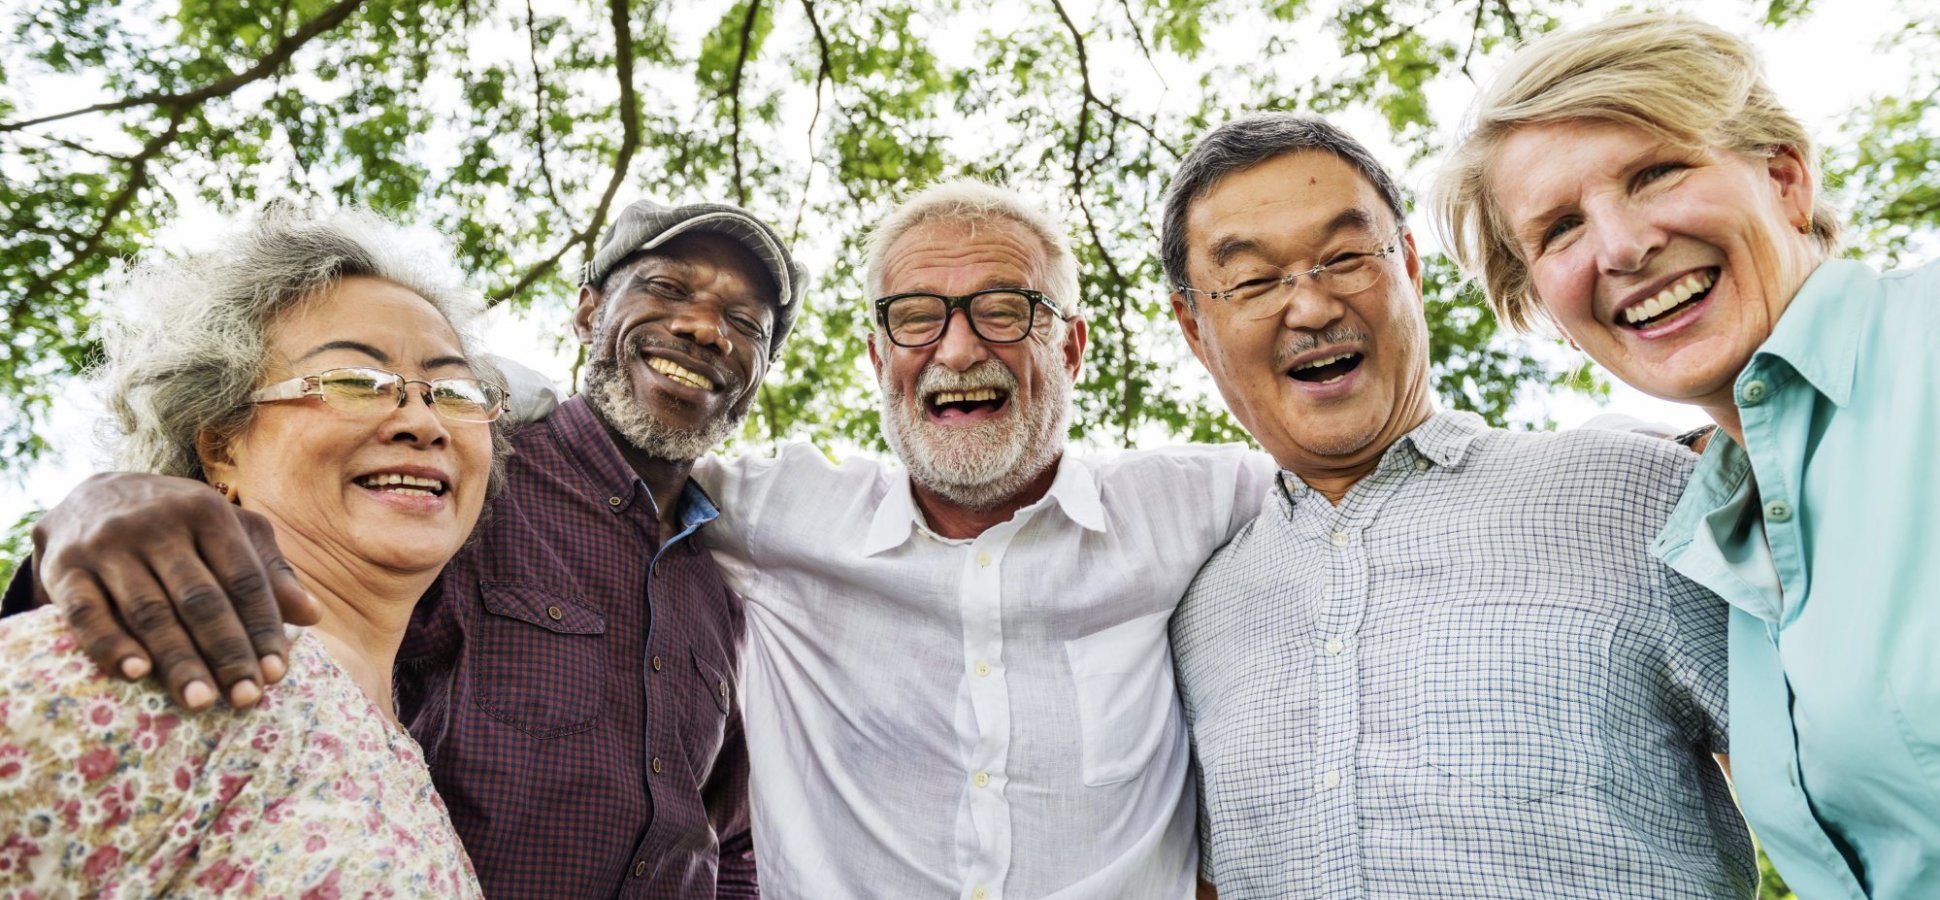 Baby Boomers Don't Like the Term Senior Citizen. Here's What We Should Call Them Instead